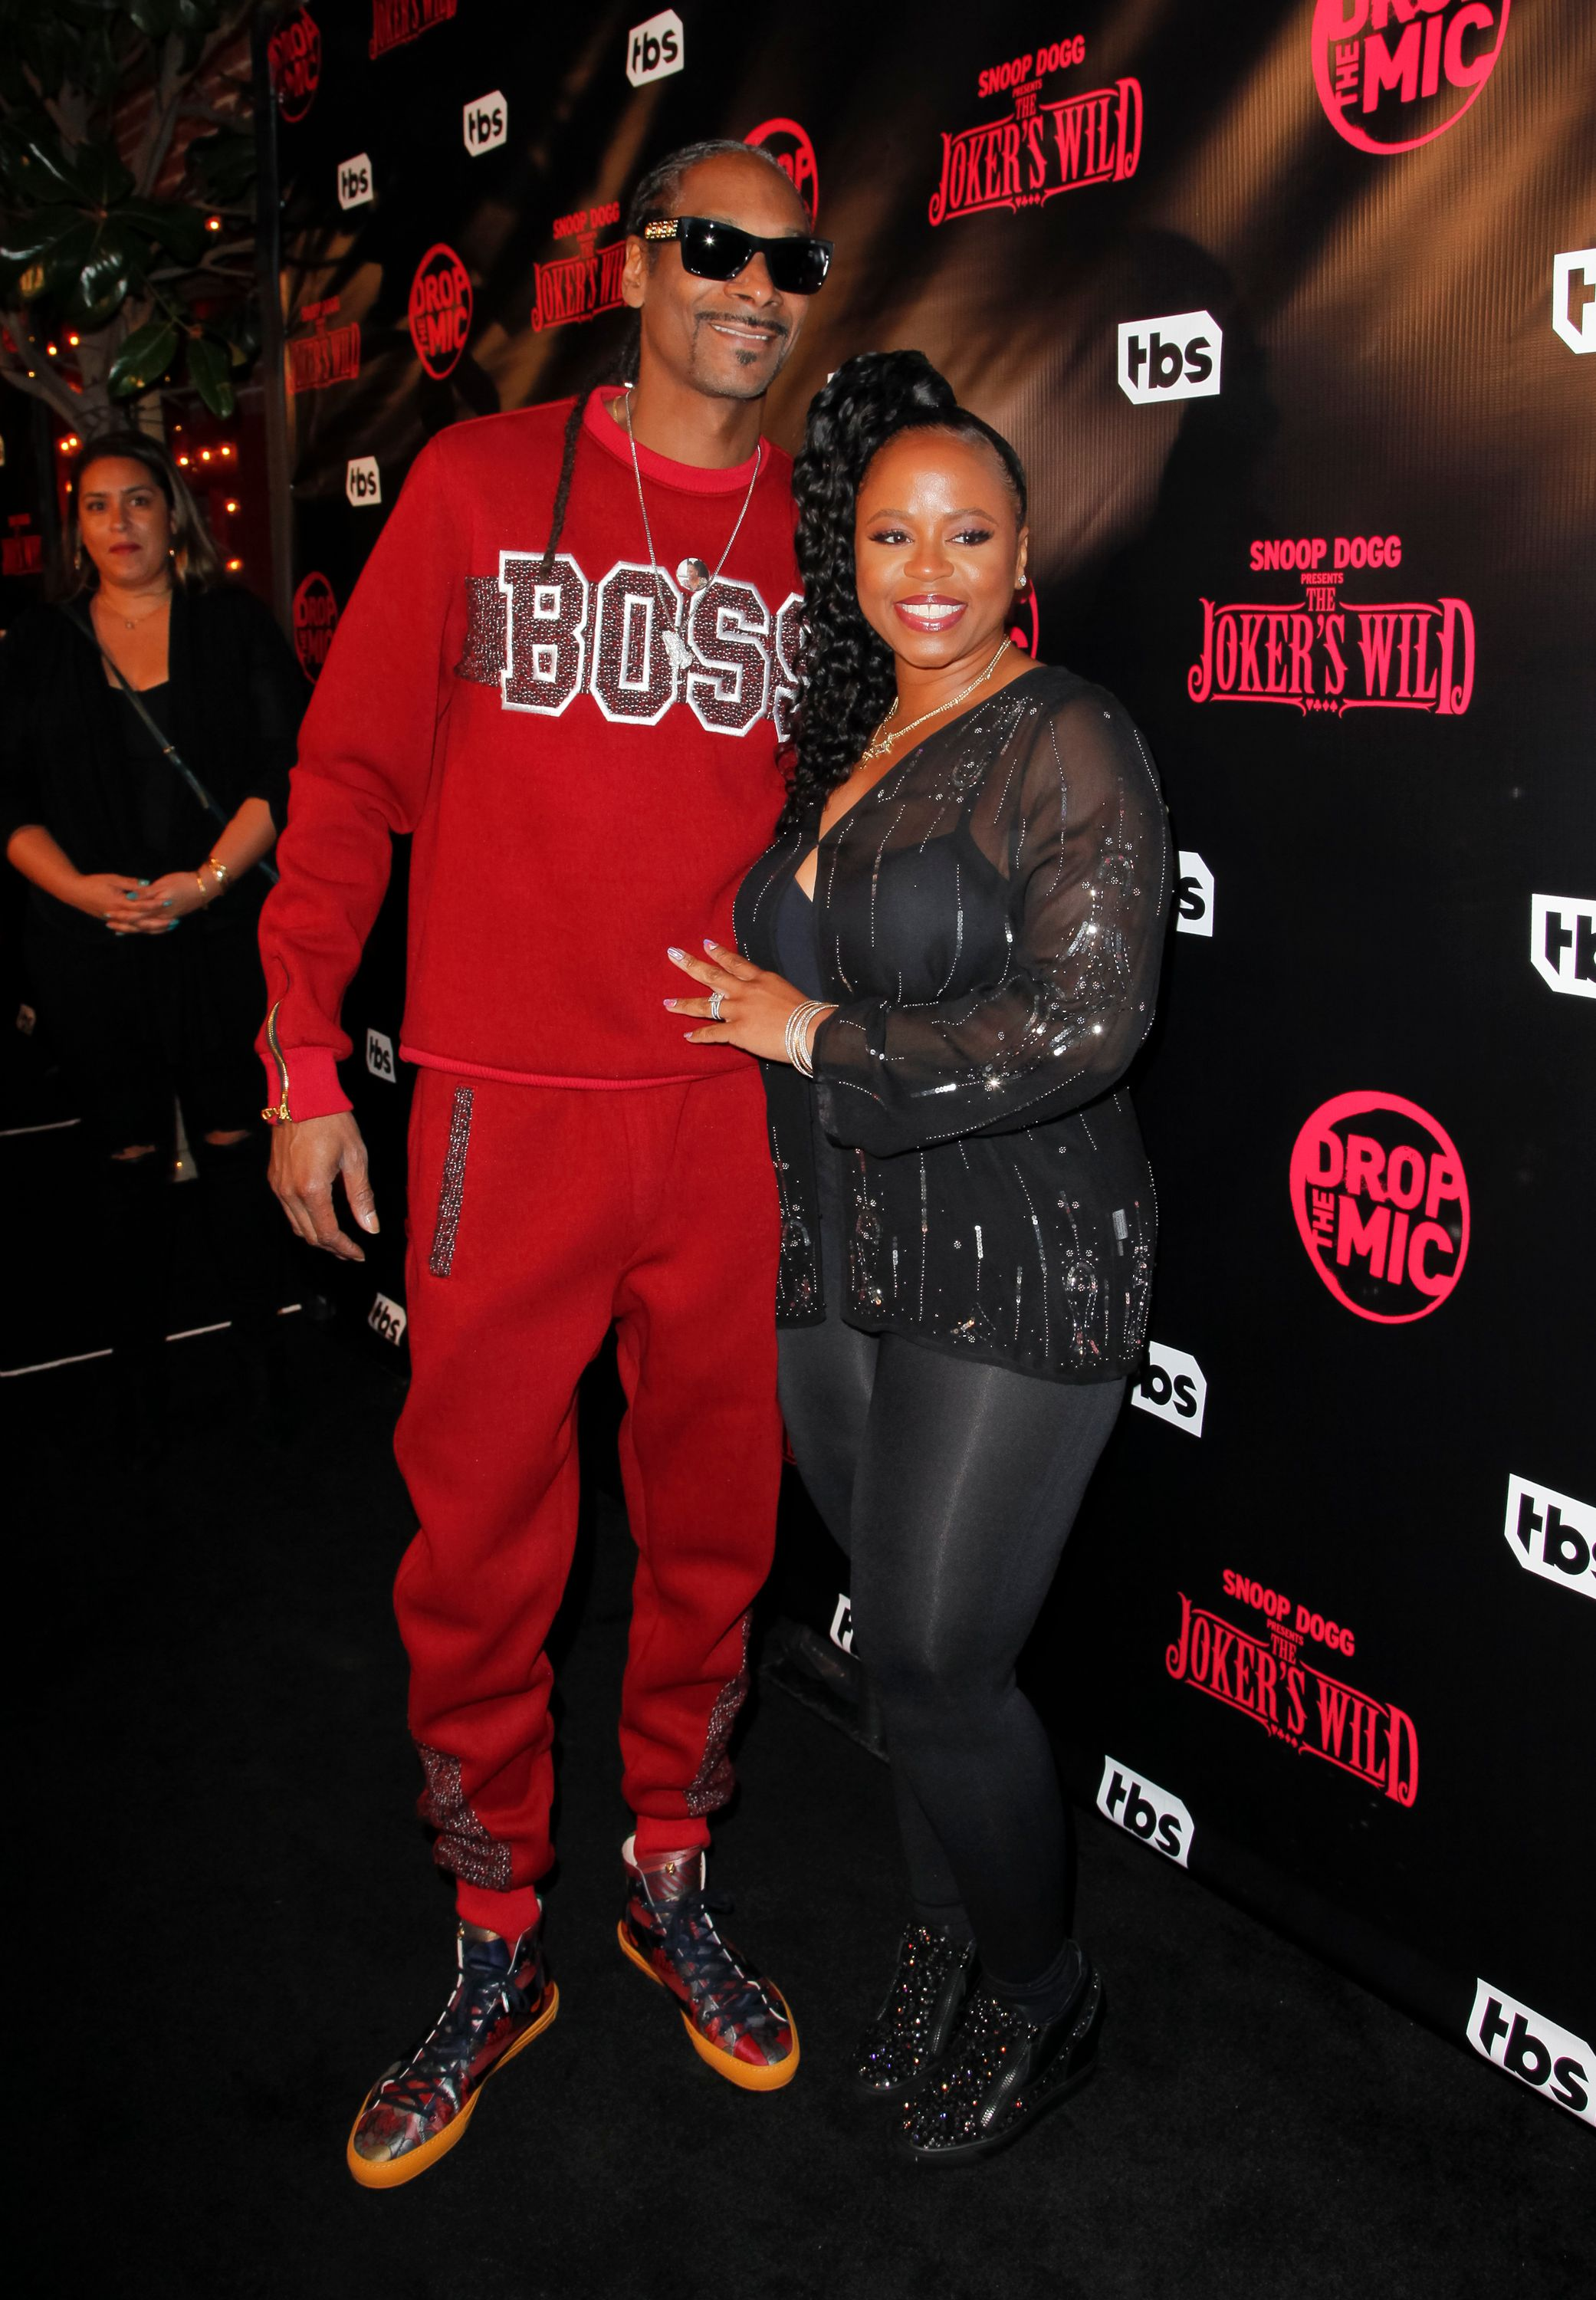 Snoop Dogg and Shante Broadus at the premiere for TBS's 'Drop The Mic' and 'The Joker's Wild' on October 11, 2017 | Photo: Getty Images